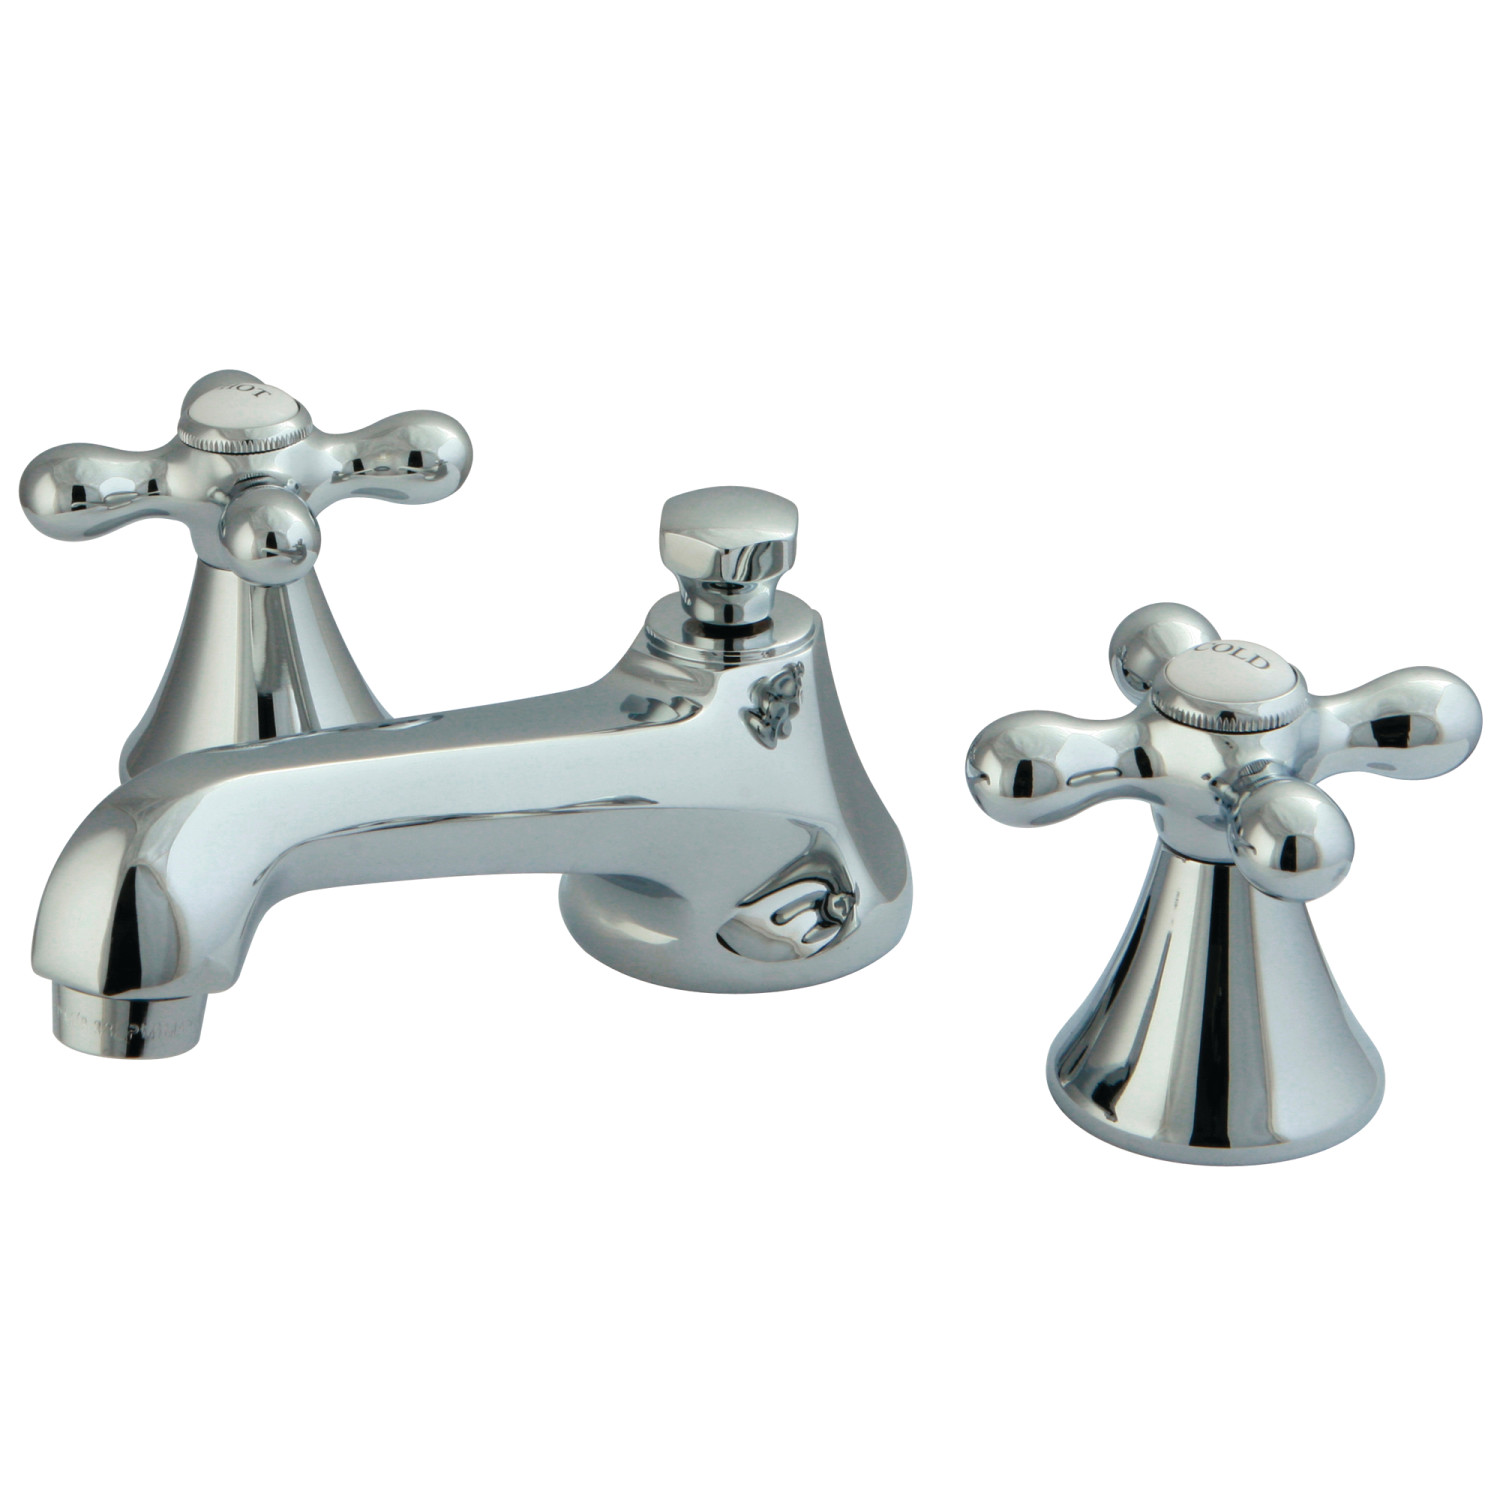 Modern Two-Handle 3-Hole Deck Mounted Widespread Bathroom Faucet with Brass Pop-Up Polished Chrome with 4 Color Options